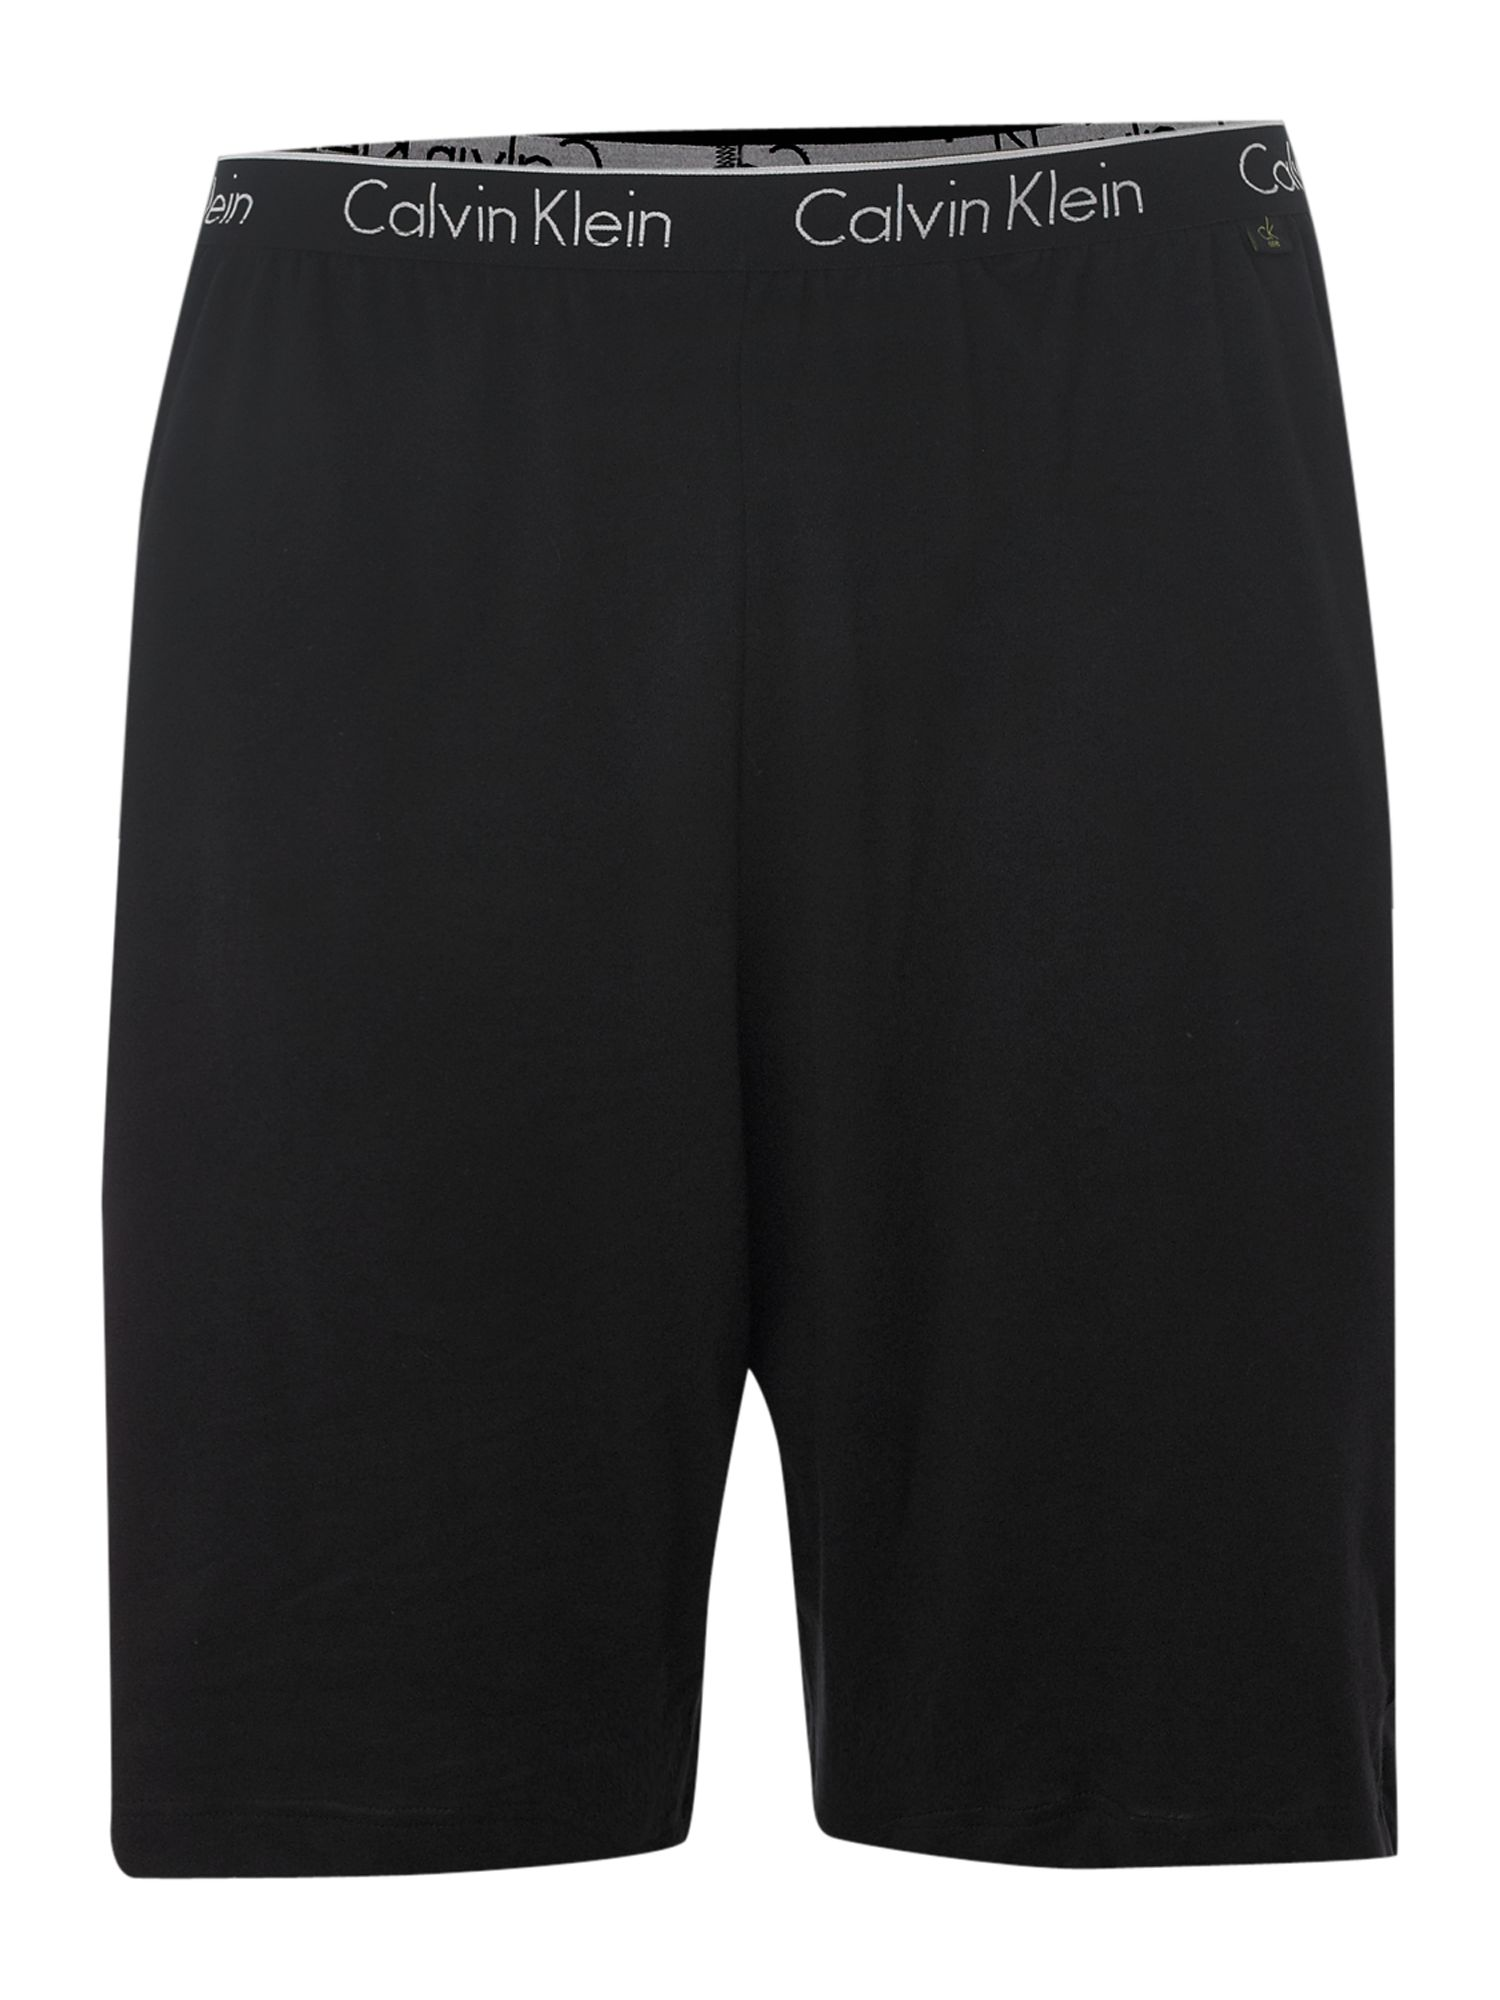 Long nightwear shorts